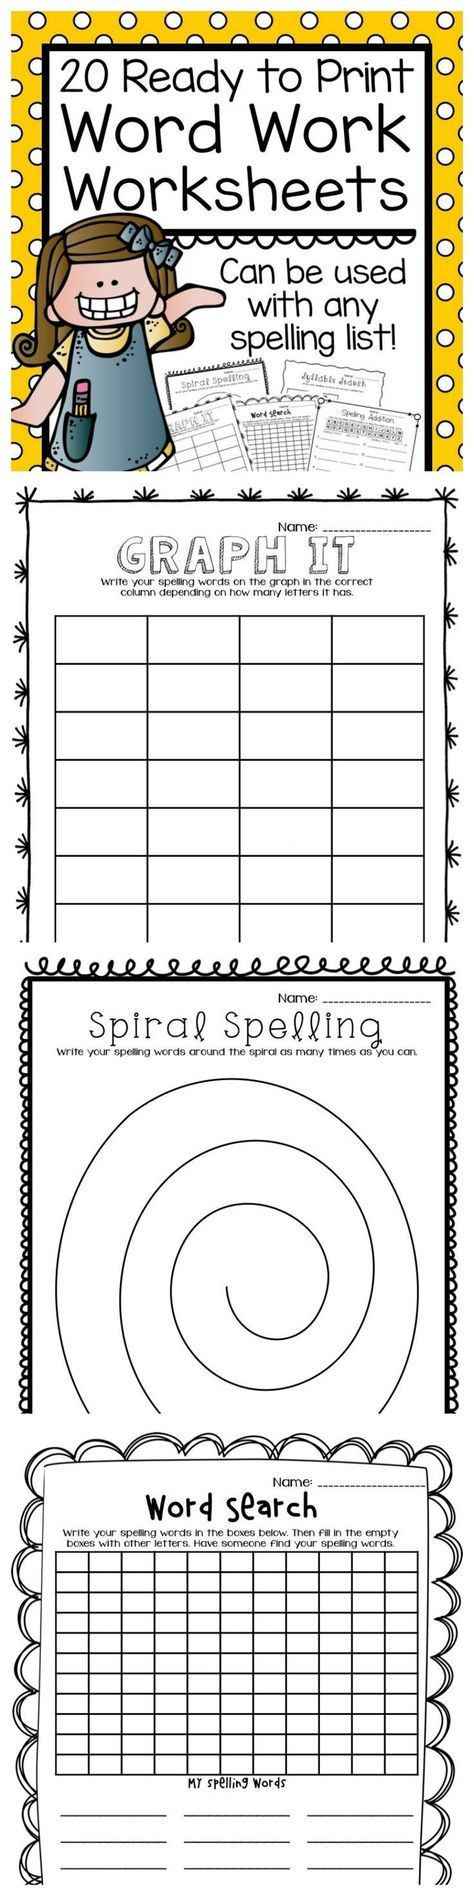 20 Ready To Print Word Work Worksheets that can be used with any ...